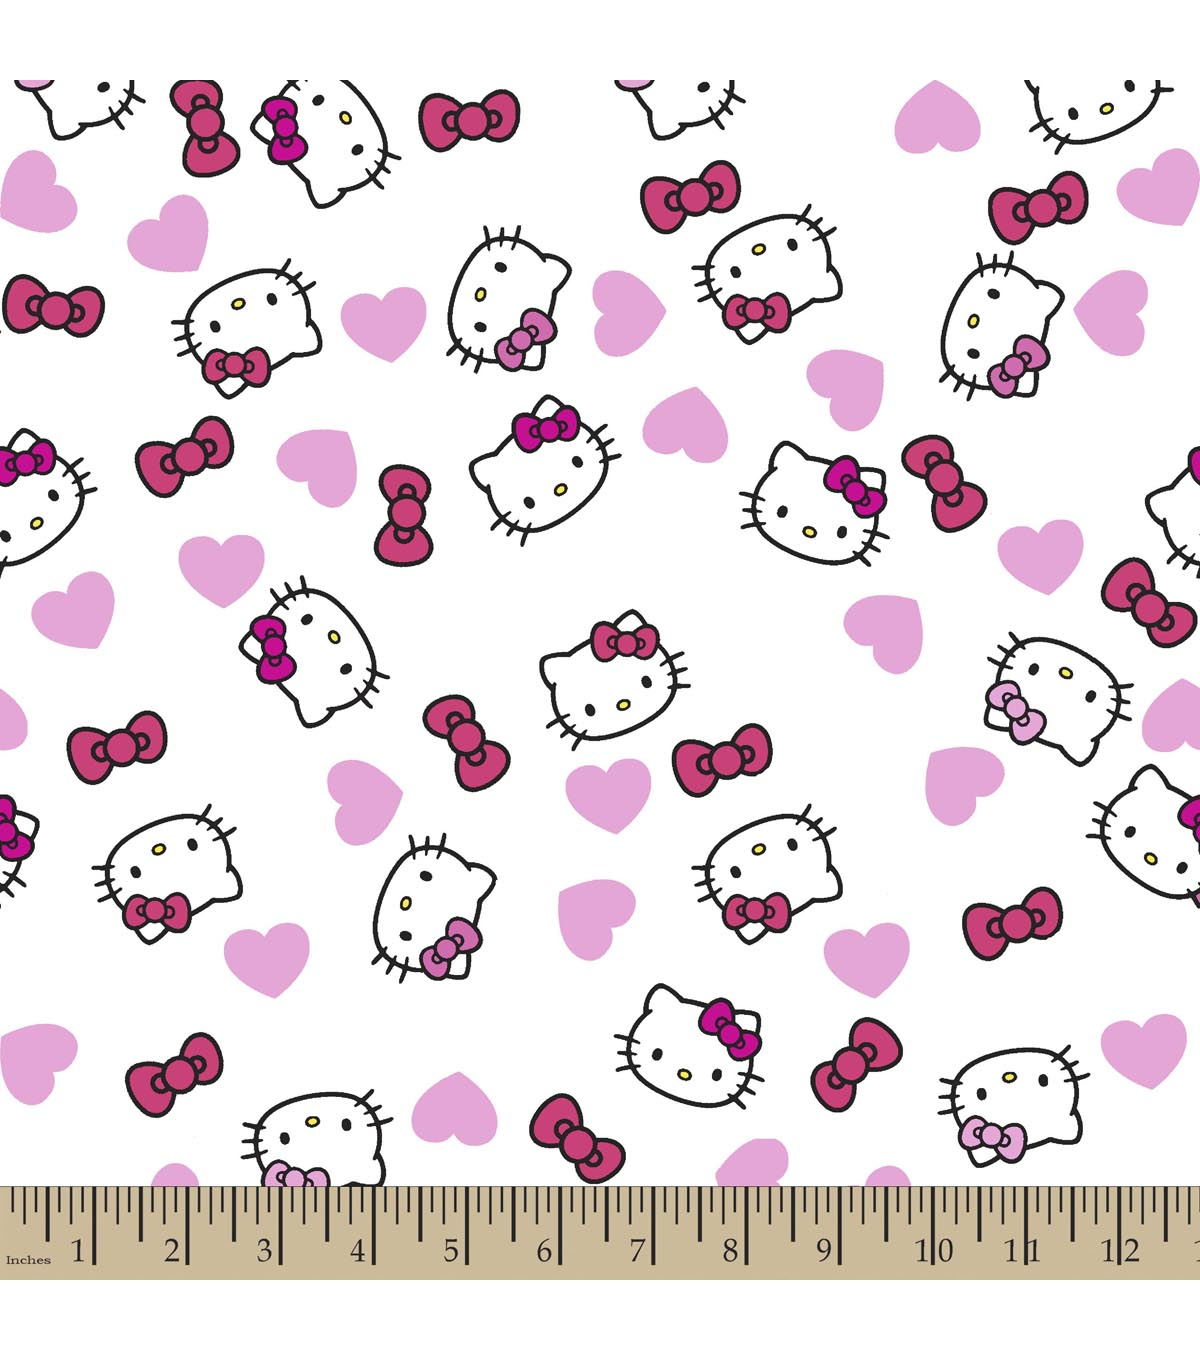 Sanrio Hello Kitty Print Fabric Headshot Joann